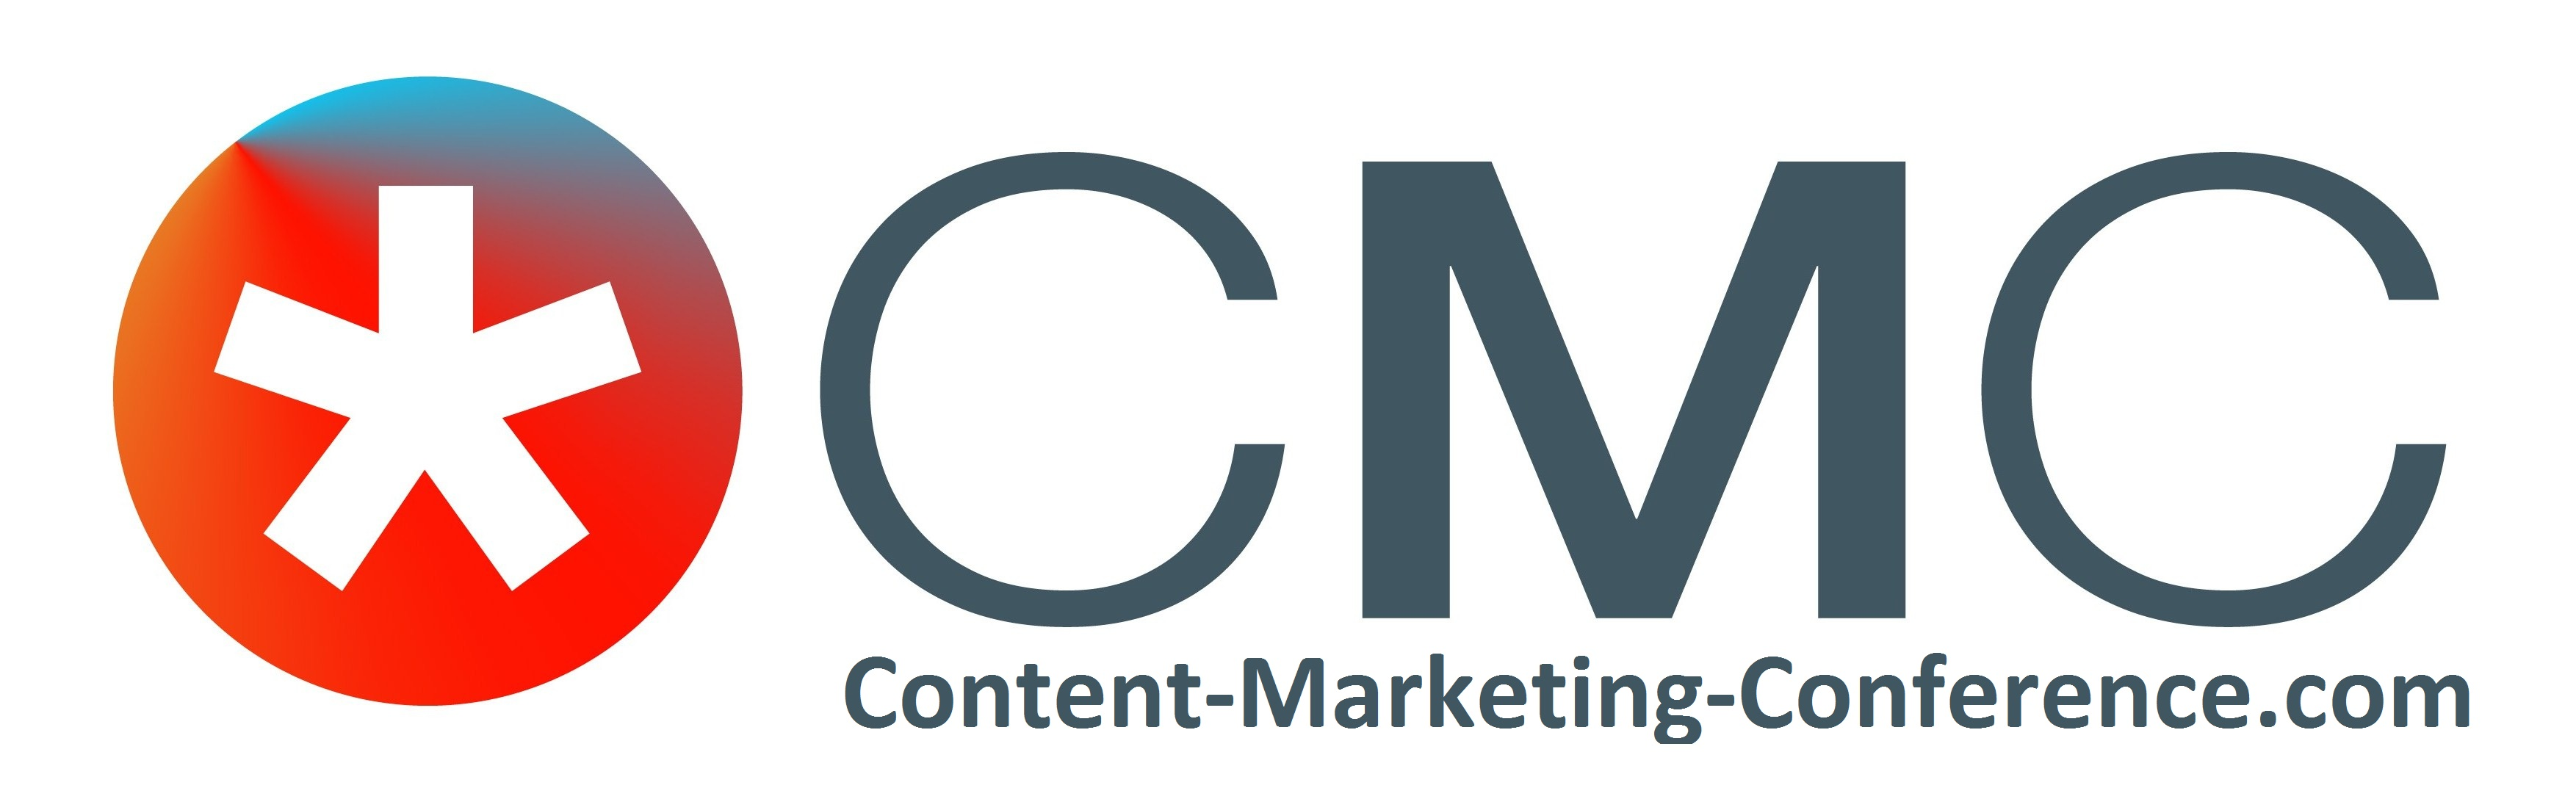 Content-Marketing-Conference-Logo